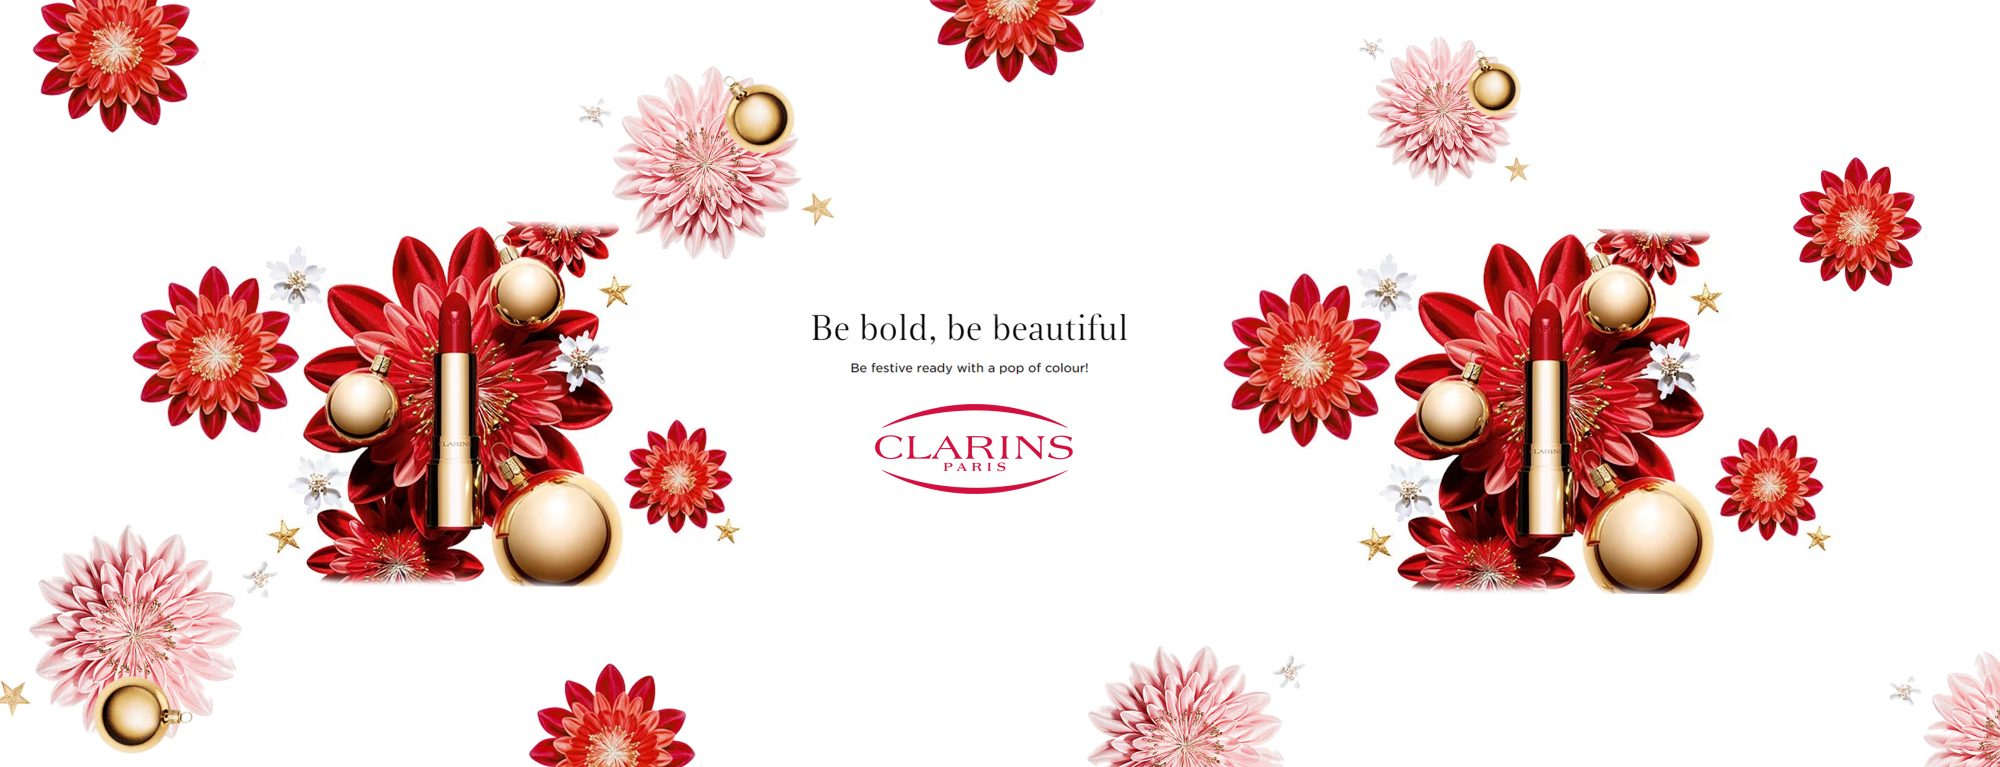 Clarins Christmas Make-Up Lip Red Flowers Banner 2018